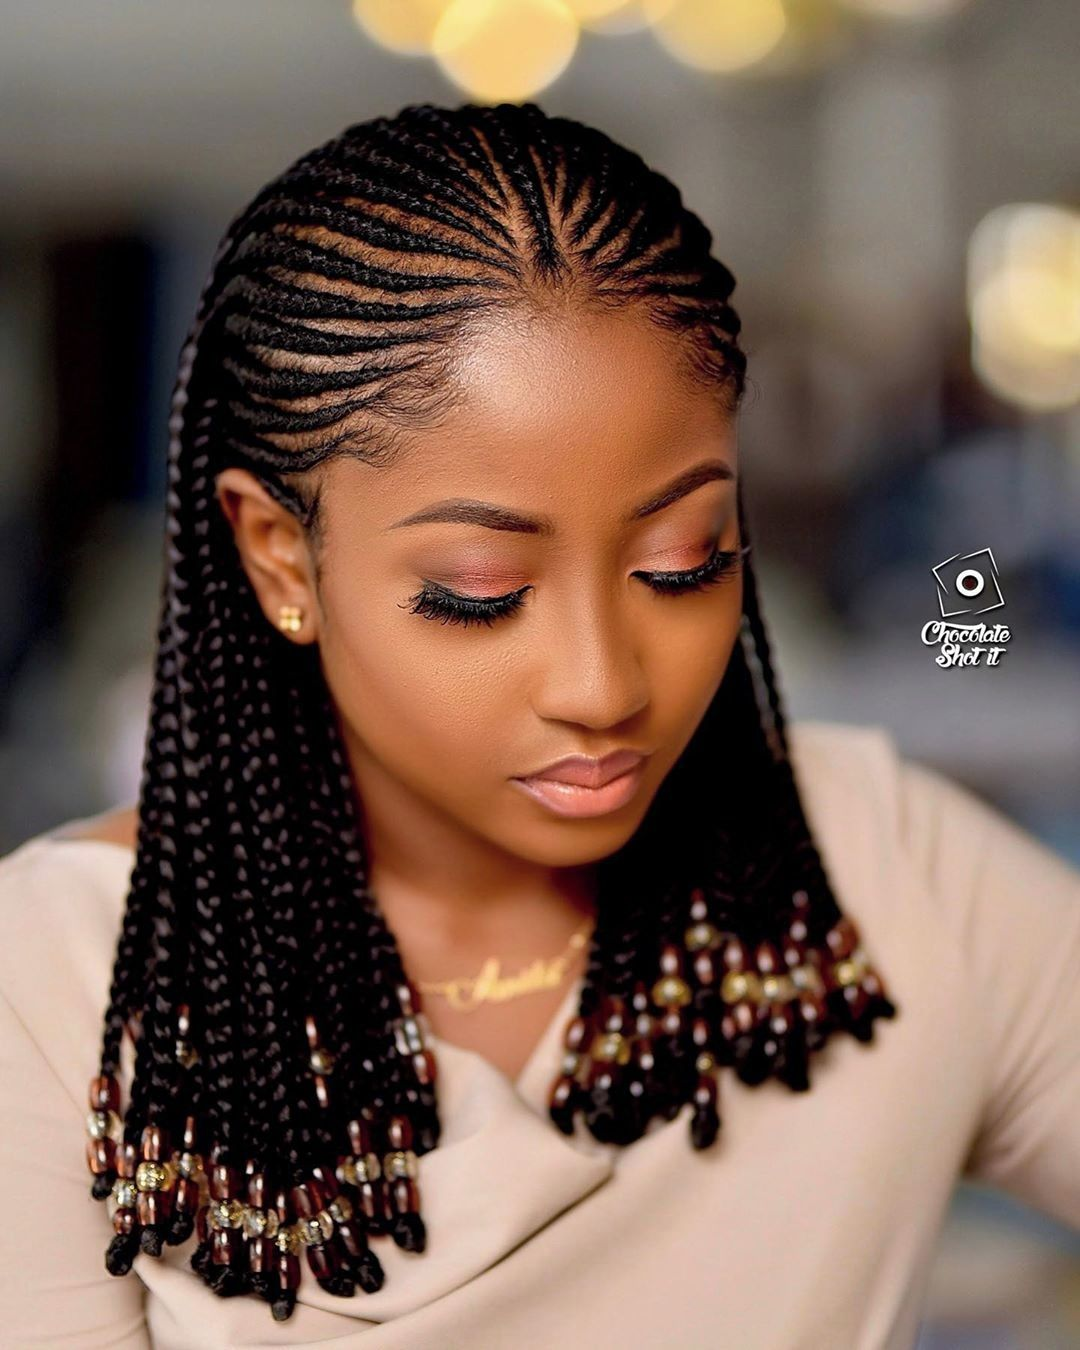 Neatandsleek On Instagram When Was The Last Time You Made Braids Style African Hairstyles African Hair Braiding Styles Bob Braids Hairstyles